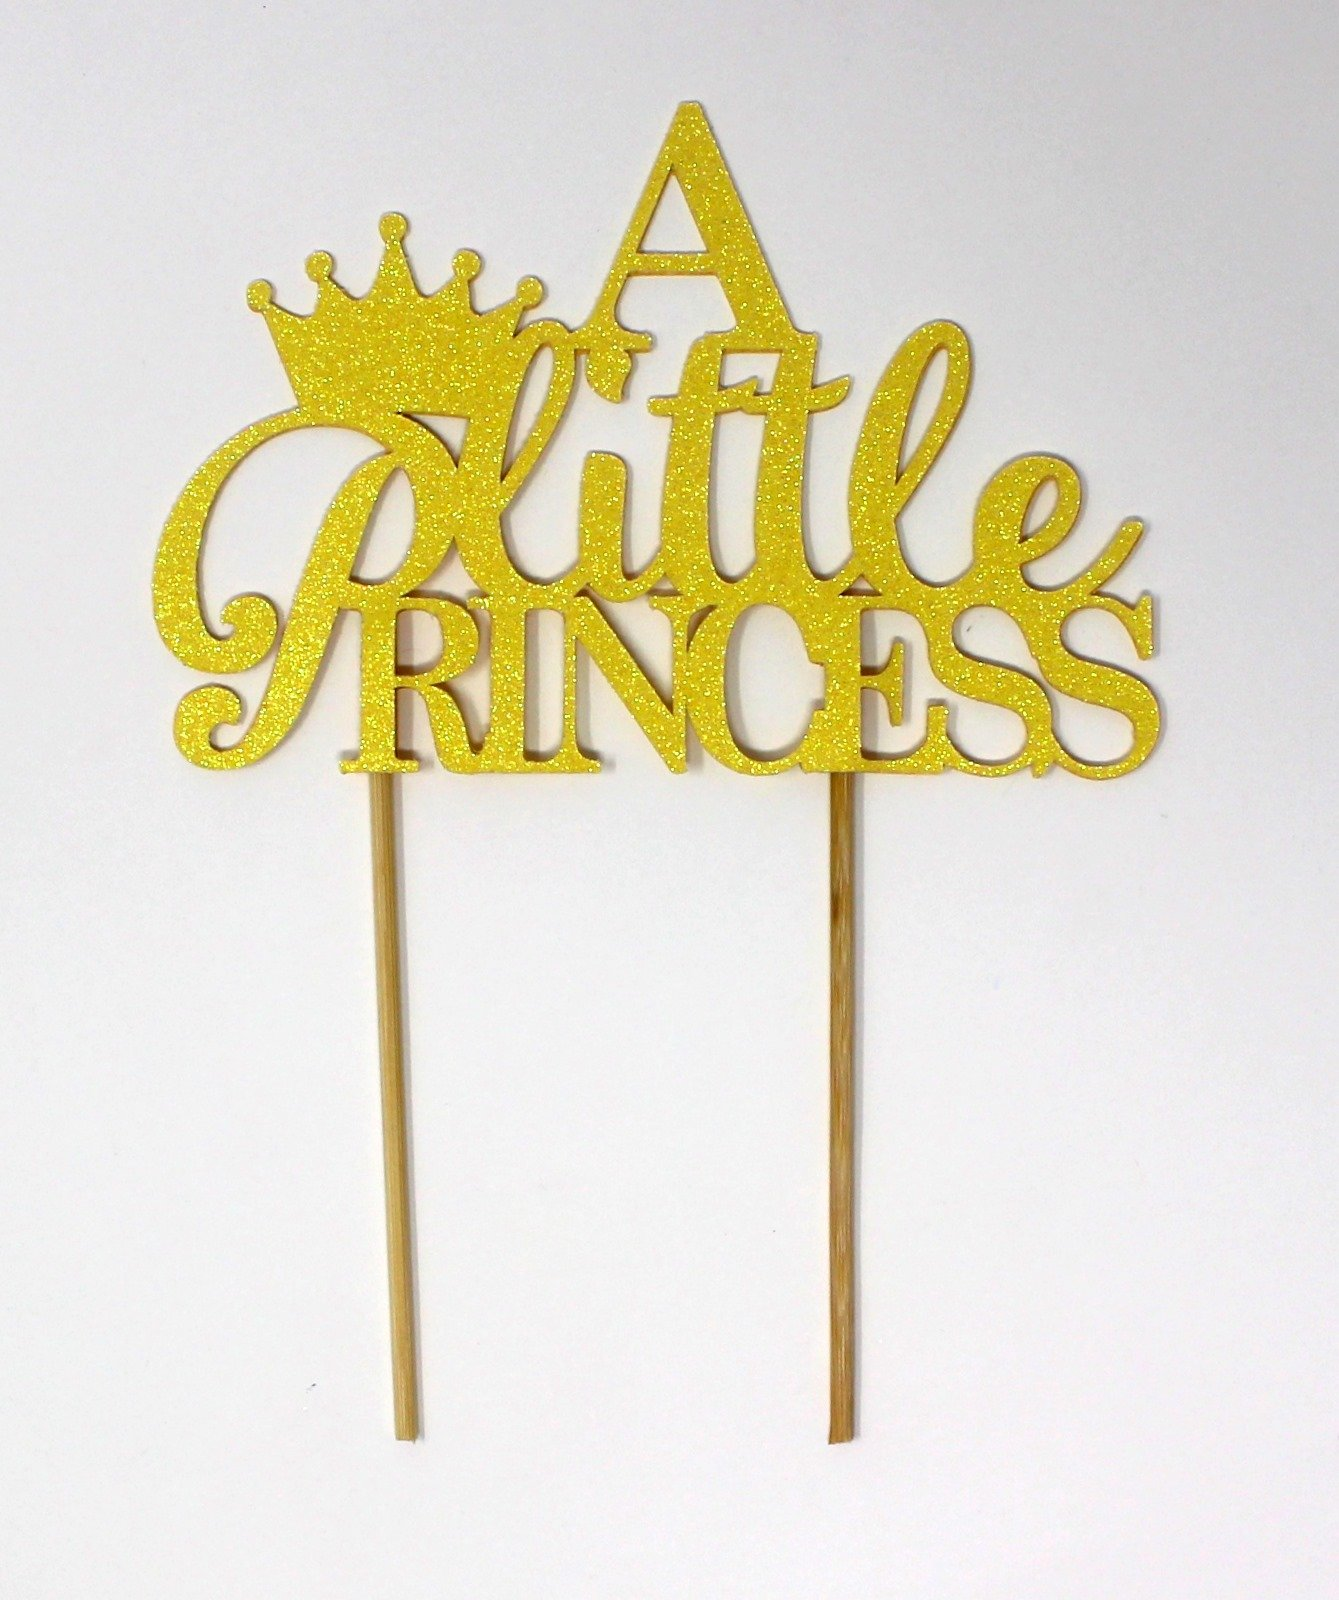 All About Details X001S0WLT5 Little Princess Cake, 1pc, 1st Birthday, Welcome Baby Girl, Party Decor, Topper (Glitter Pastel Yellow), 6-in Wide and 4-in Height (Plus 4-in Wood Sticks)